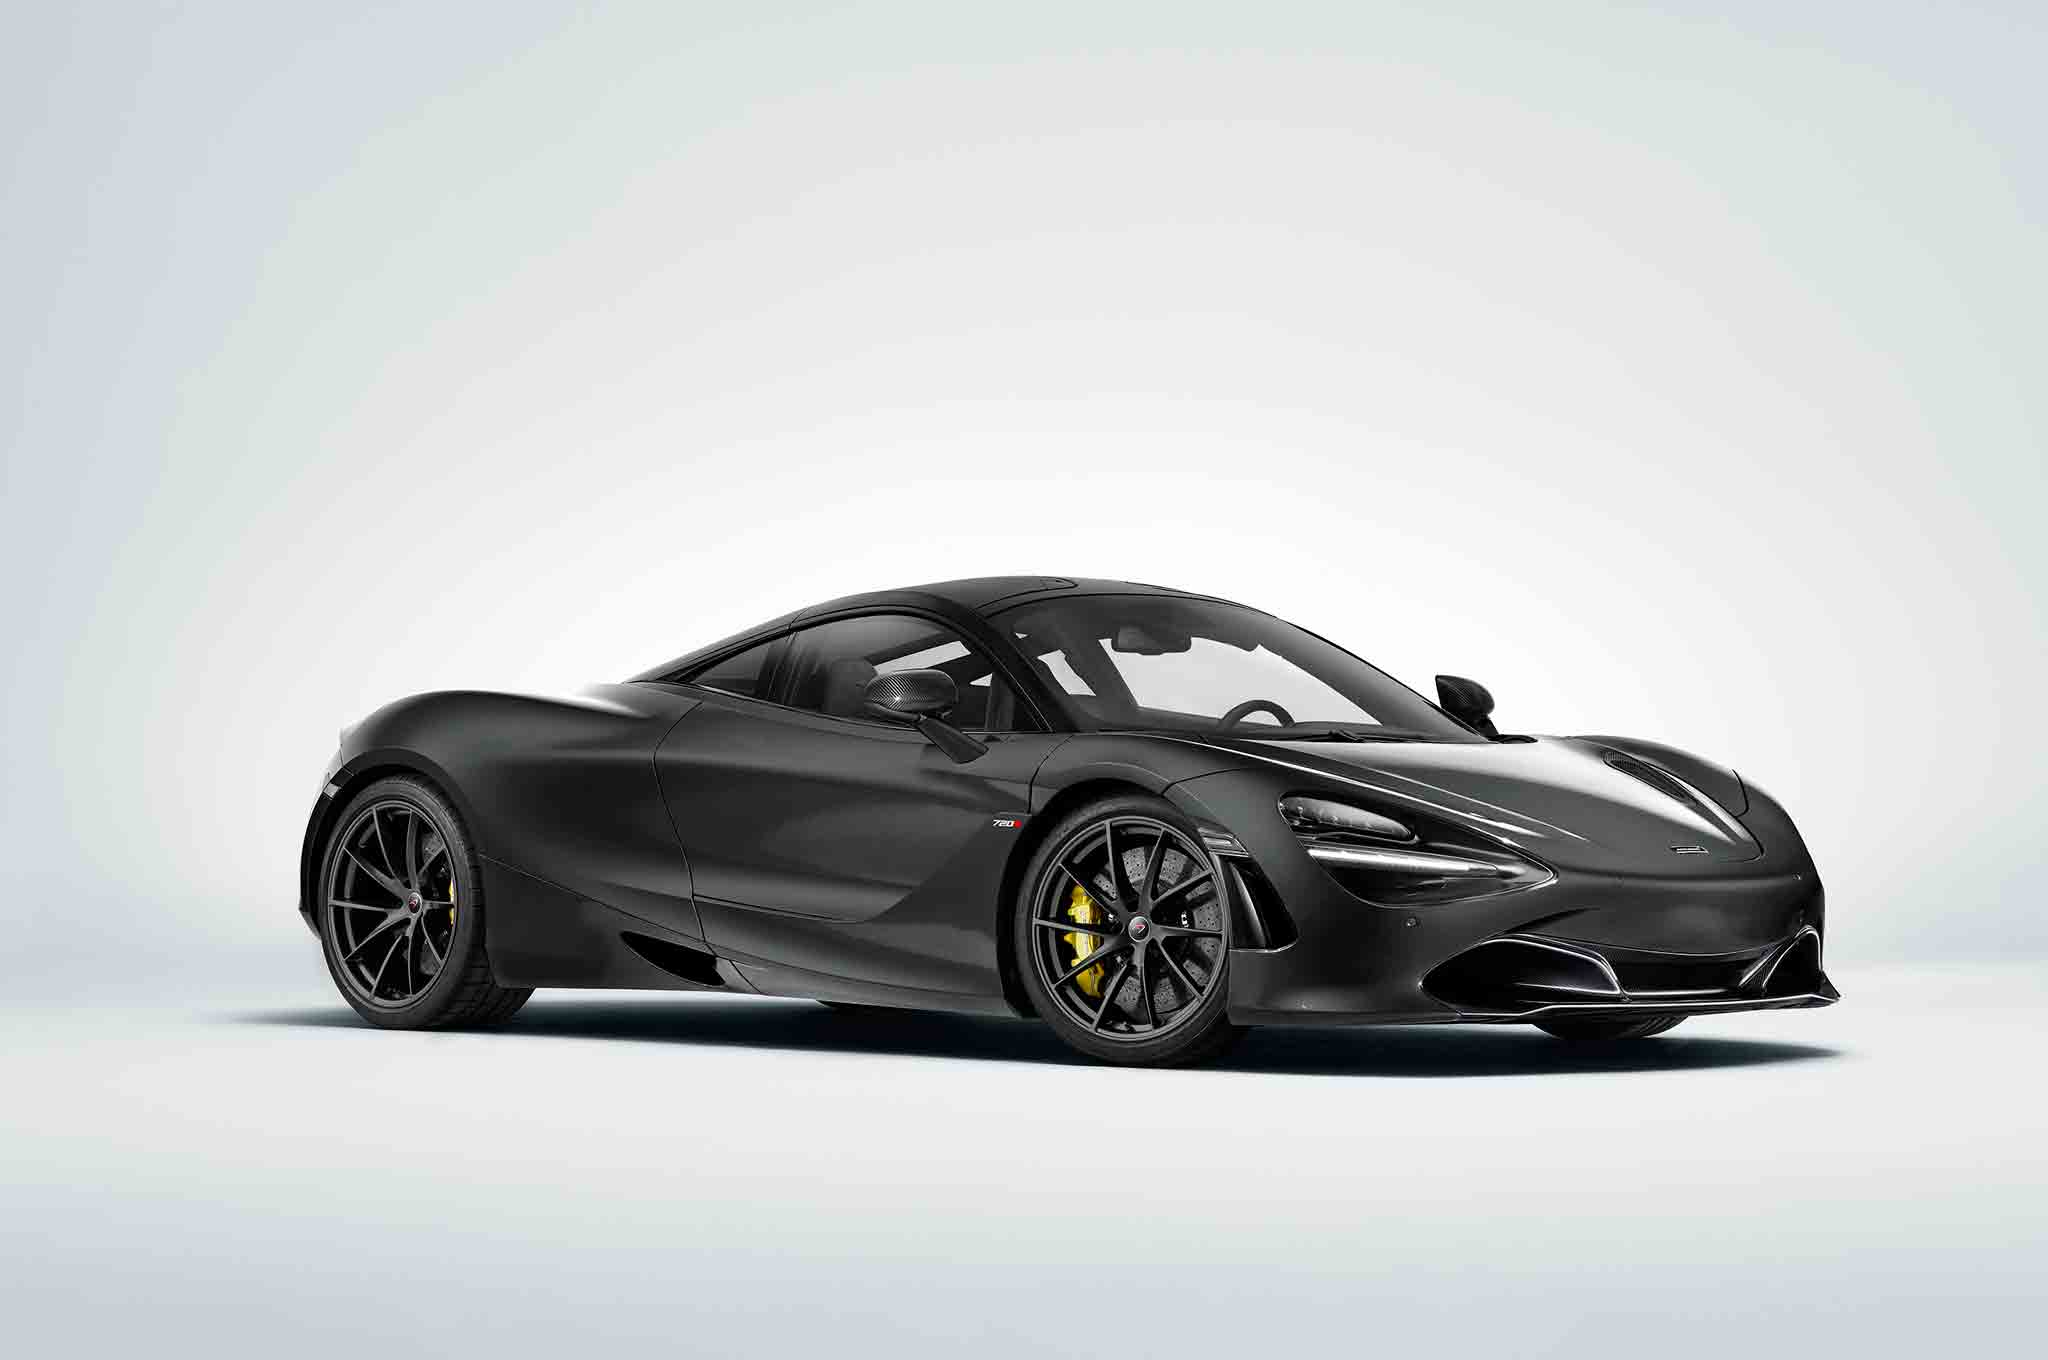 2018 mclaren 720s black. modren 720s jason udy in 2018 mclaren 720s black 7